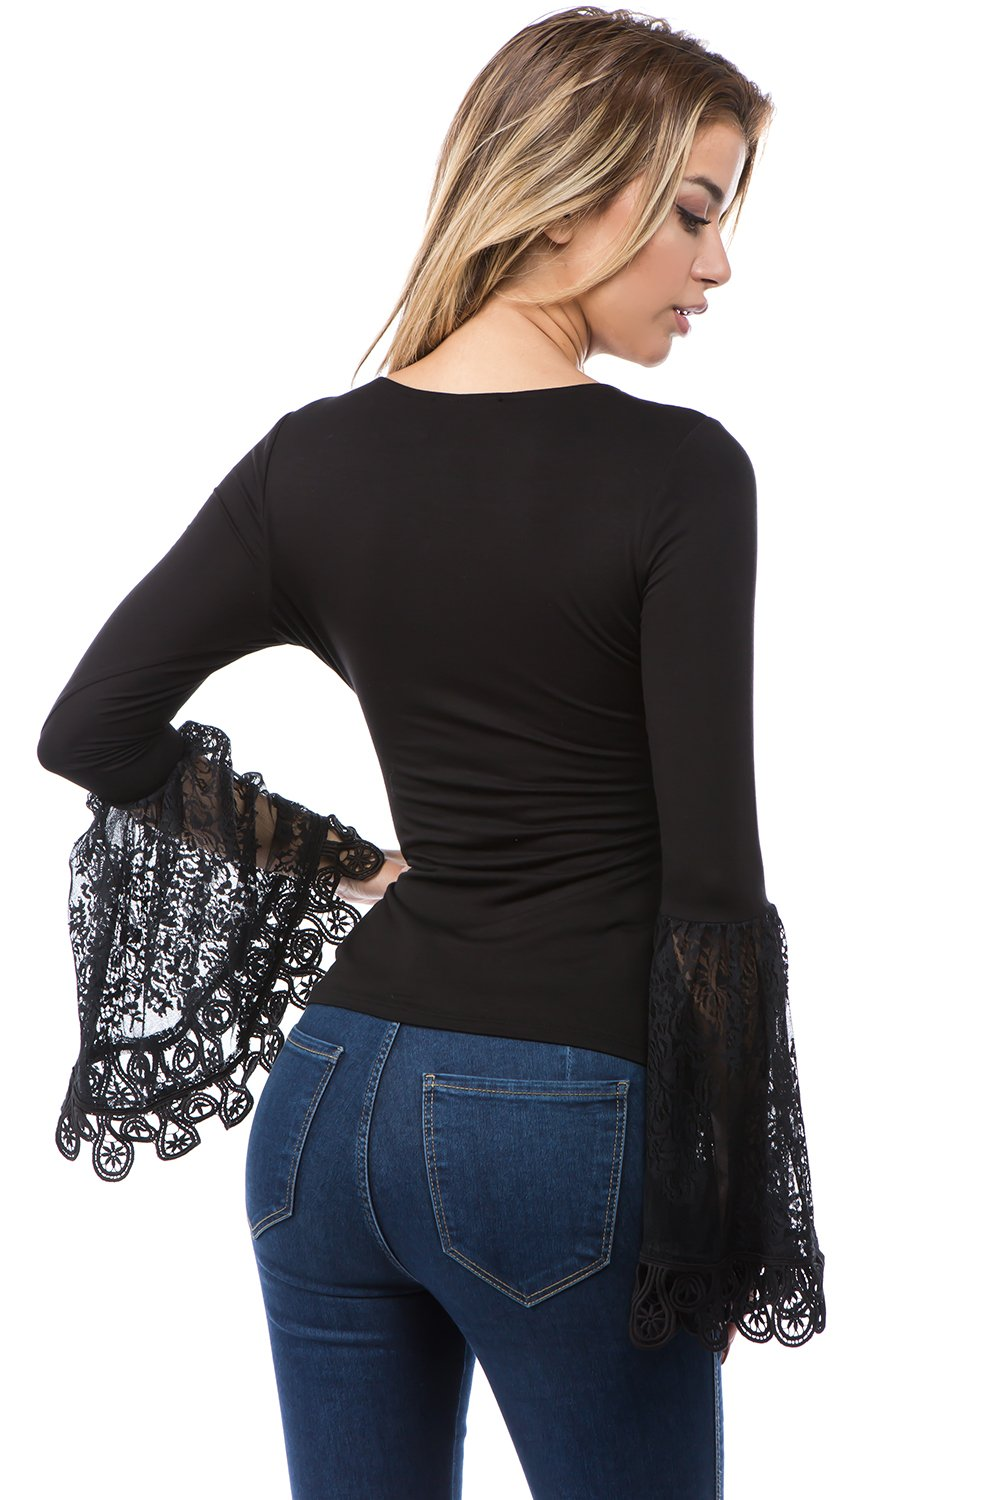 LAST CALL SIZE S | Long Lace Bell Sleeve Top in Black with Cutout Neckline